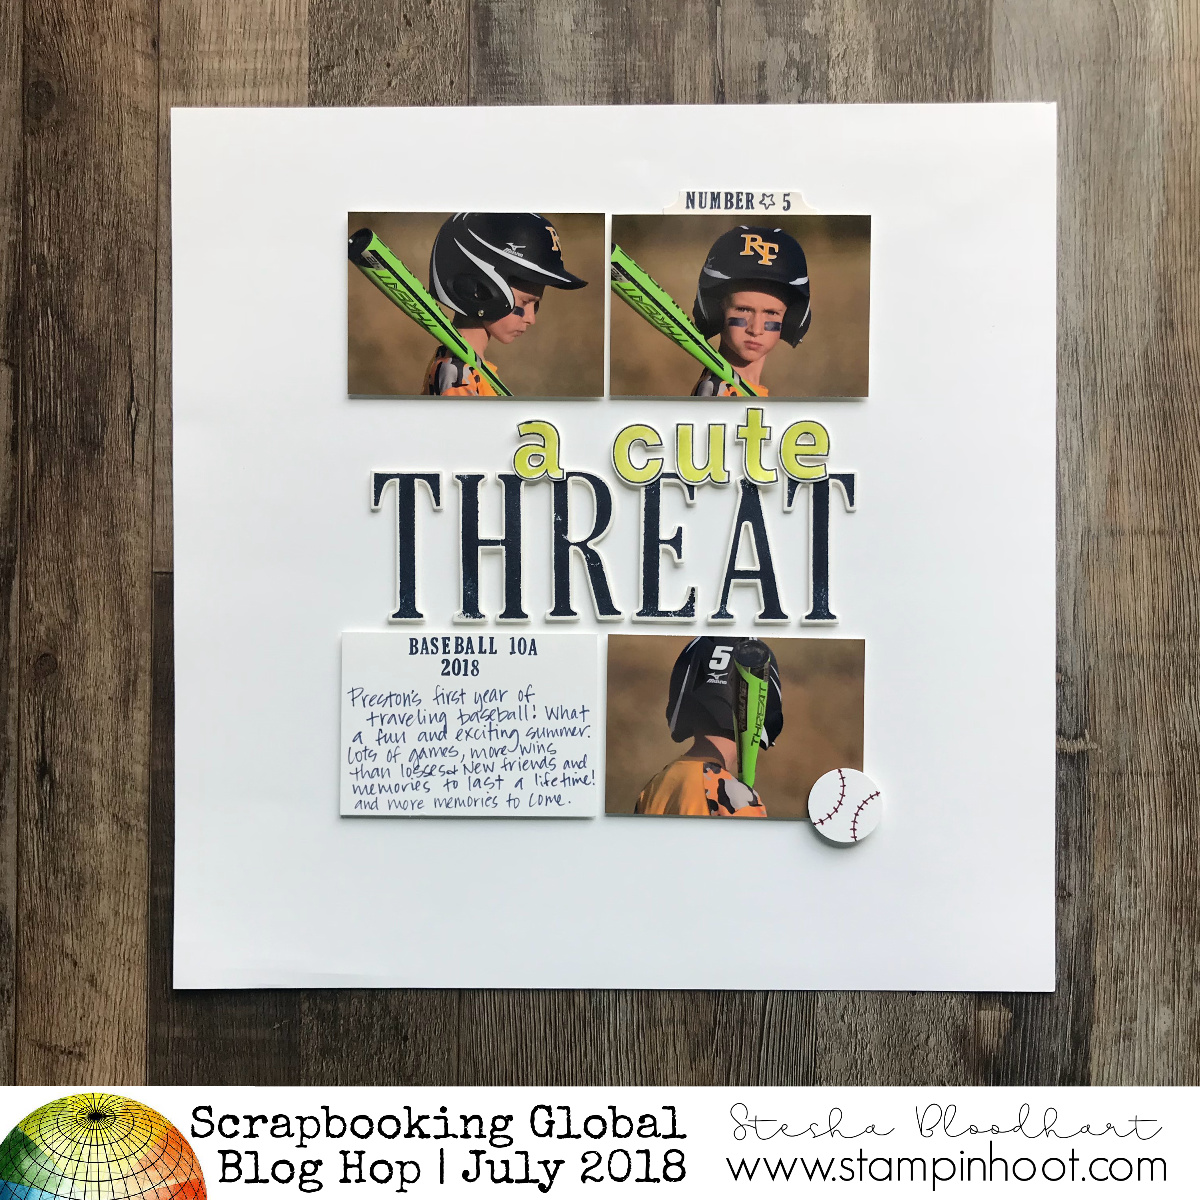 A Cute Threat Scrapbook Page for the Scrapbooking Global Blog Hop July 2018 created by Stampin' Hoot! Stesha Bloodhart #stampinhoot #steshabloodhart